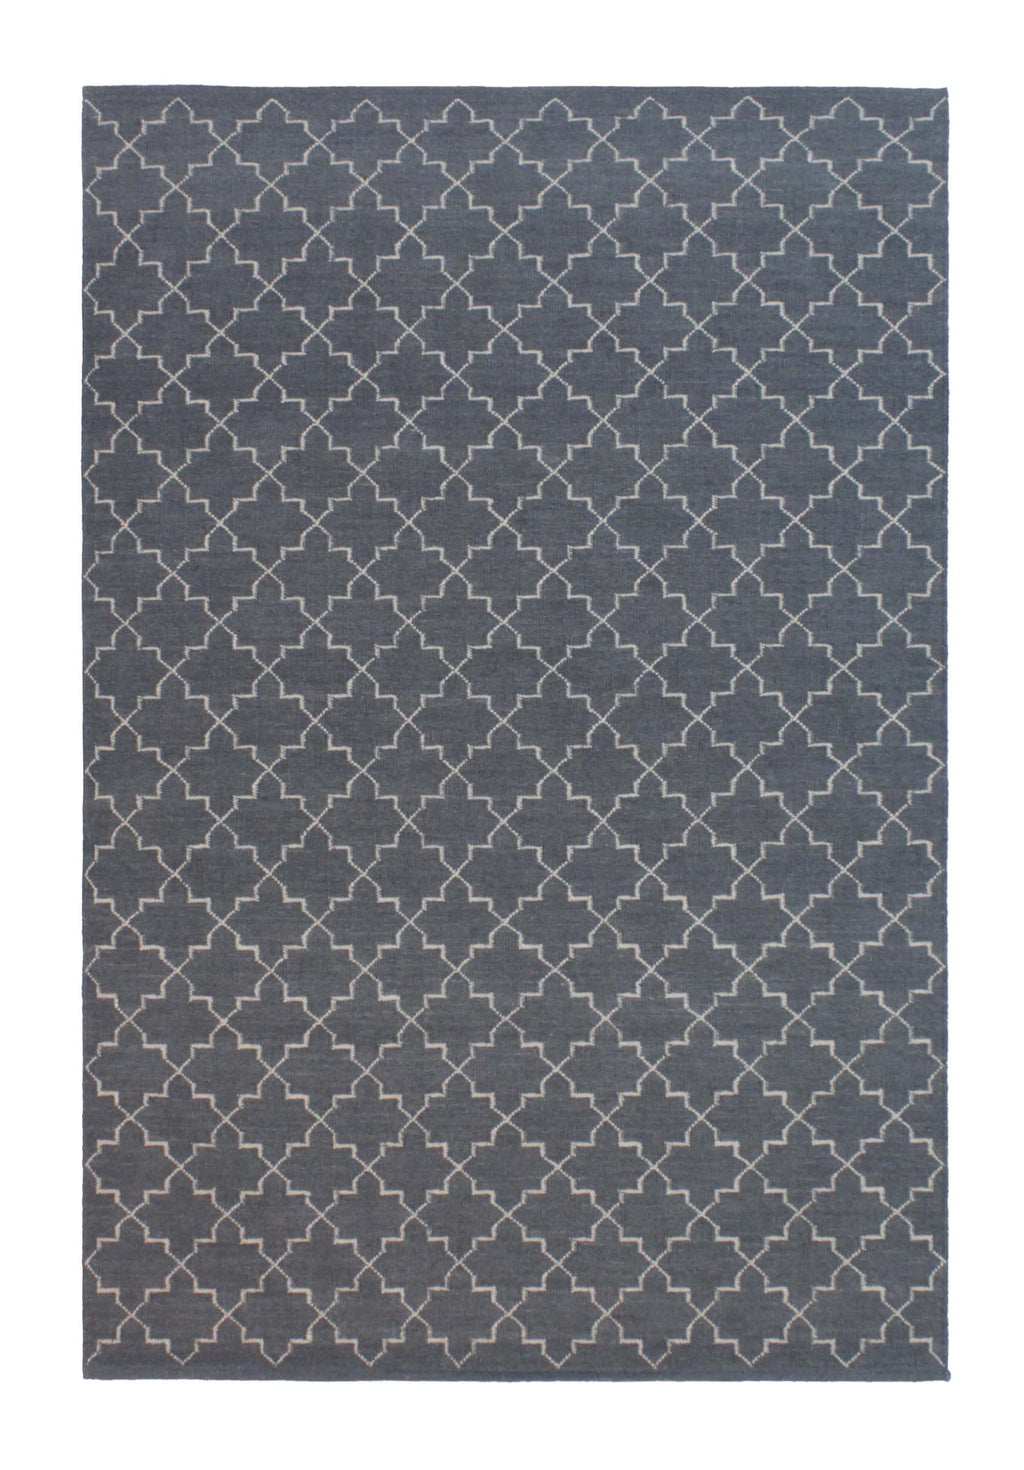 aza Grey Moroccan Lattice Wool Rug